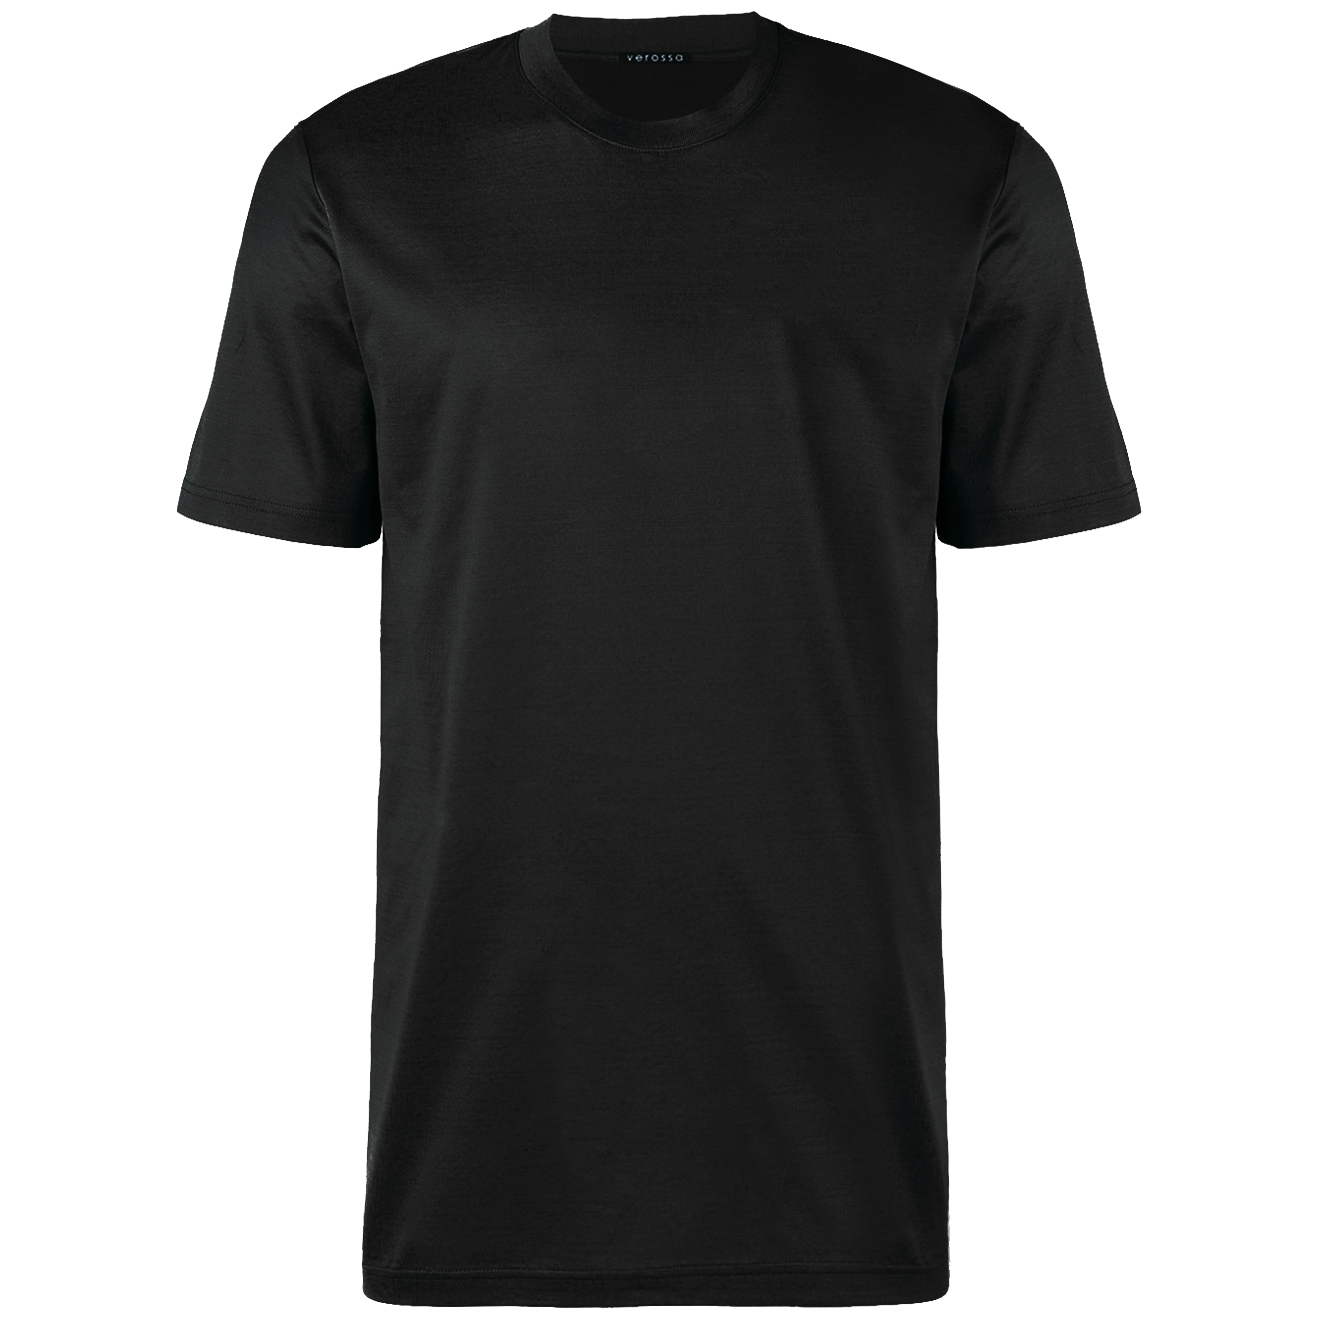 Cheap plain black t shirts south park t shirts for T shirt plain black